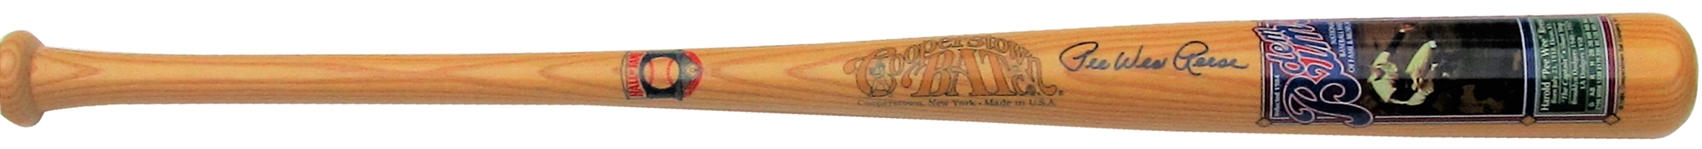 PEE WEE REESE COOPERSTOWN BAT COMPANY LIMITED EDITION DEM BUMBS SIGNED BAT